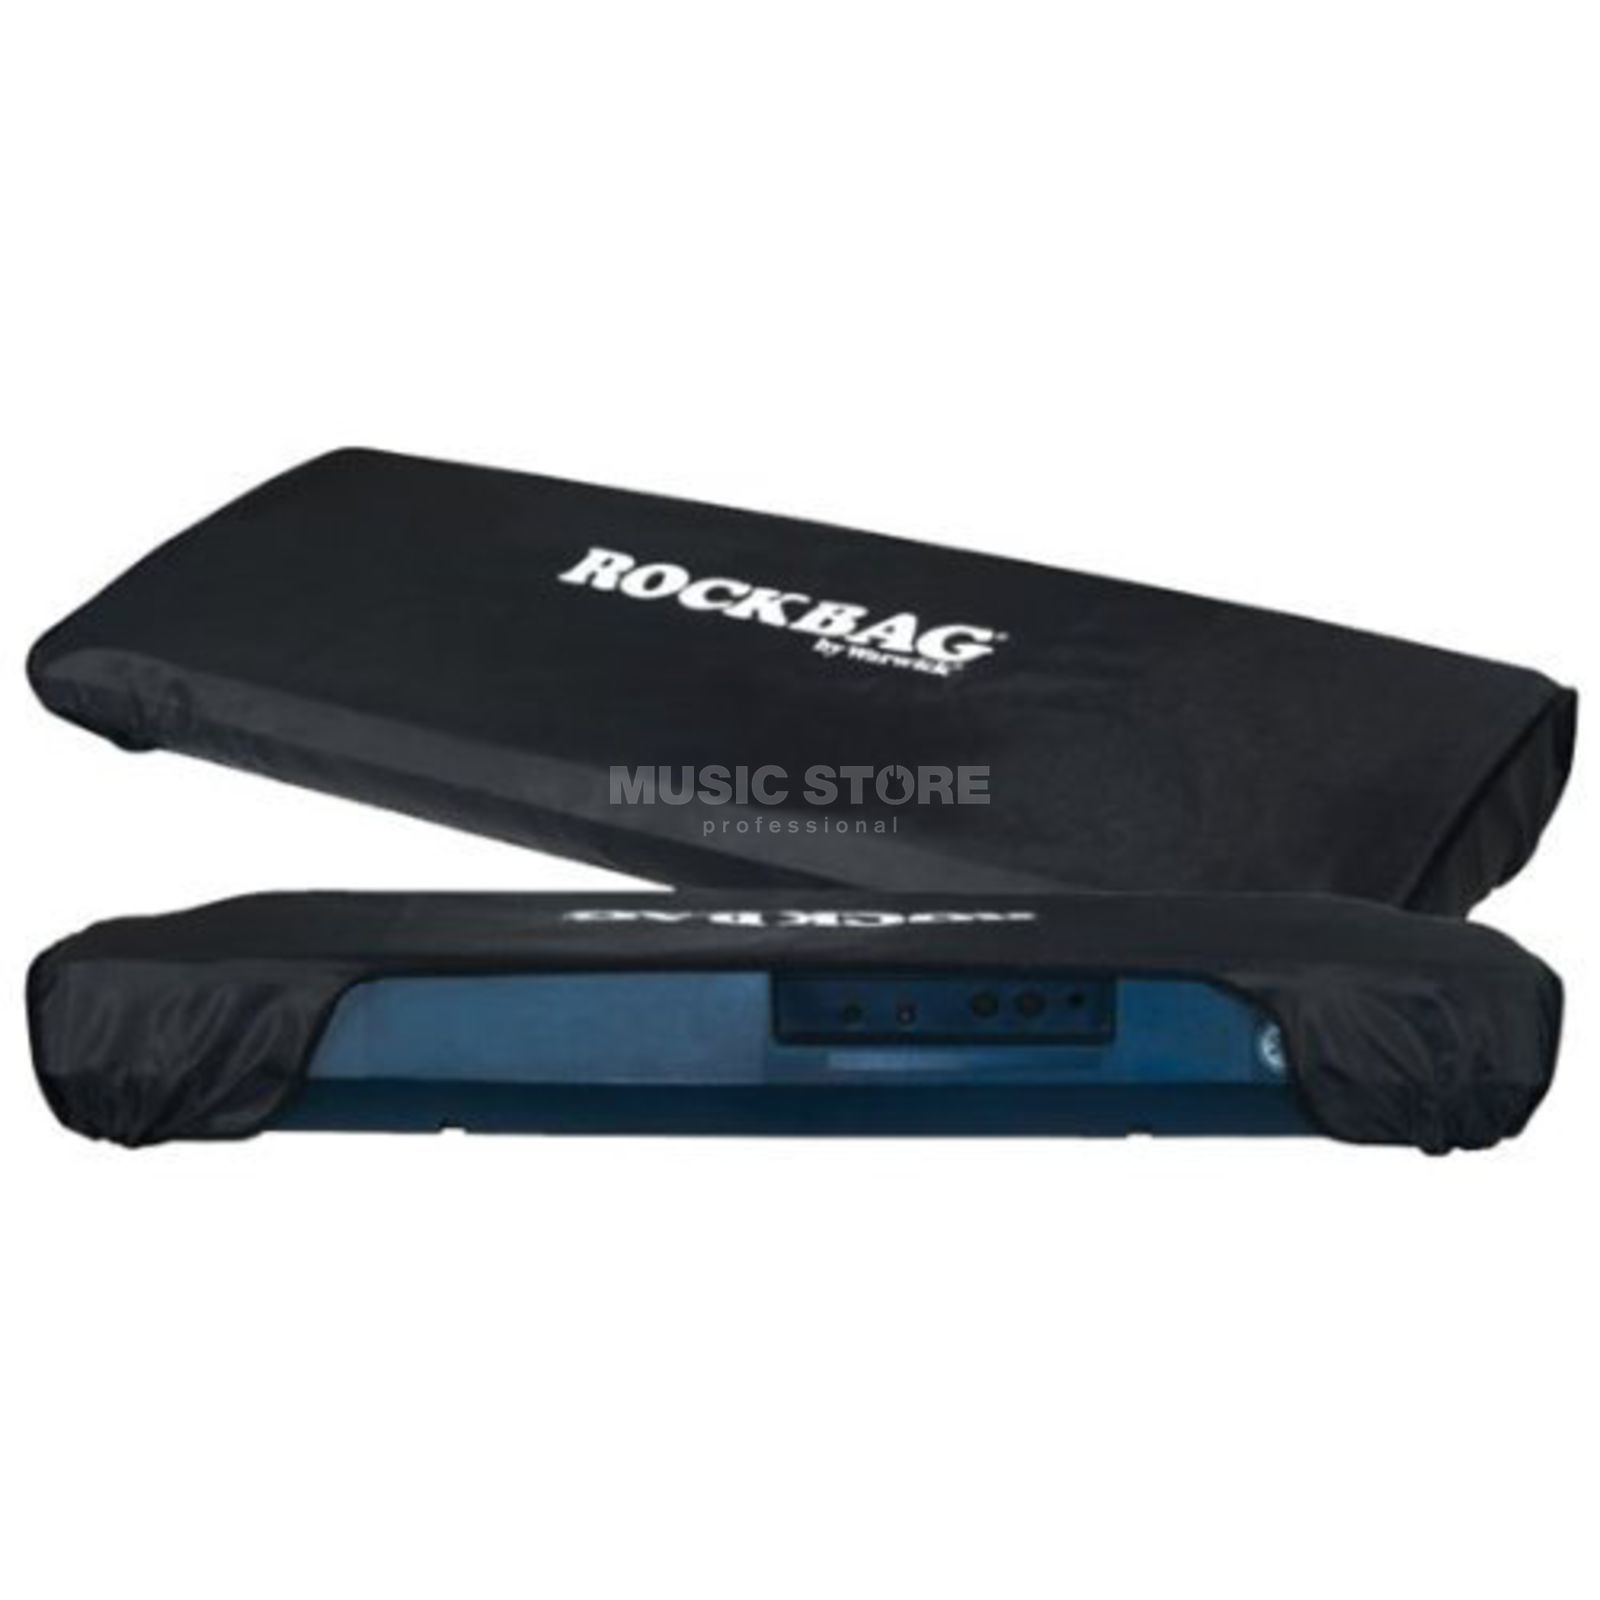 Rockbag Keyboard Dustcover RB21723B Black, 109 x - 44.5 x - 18cm Produktbillede